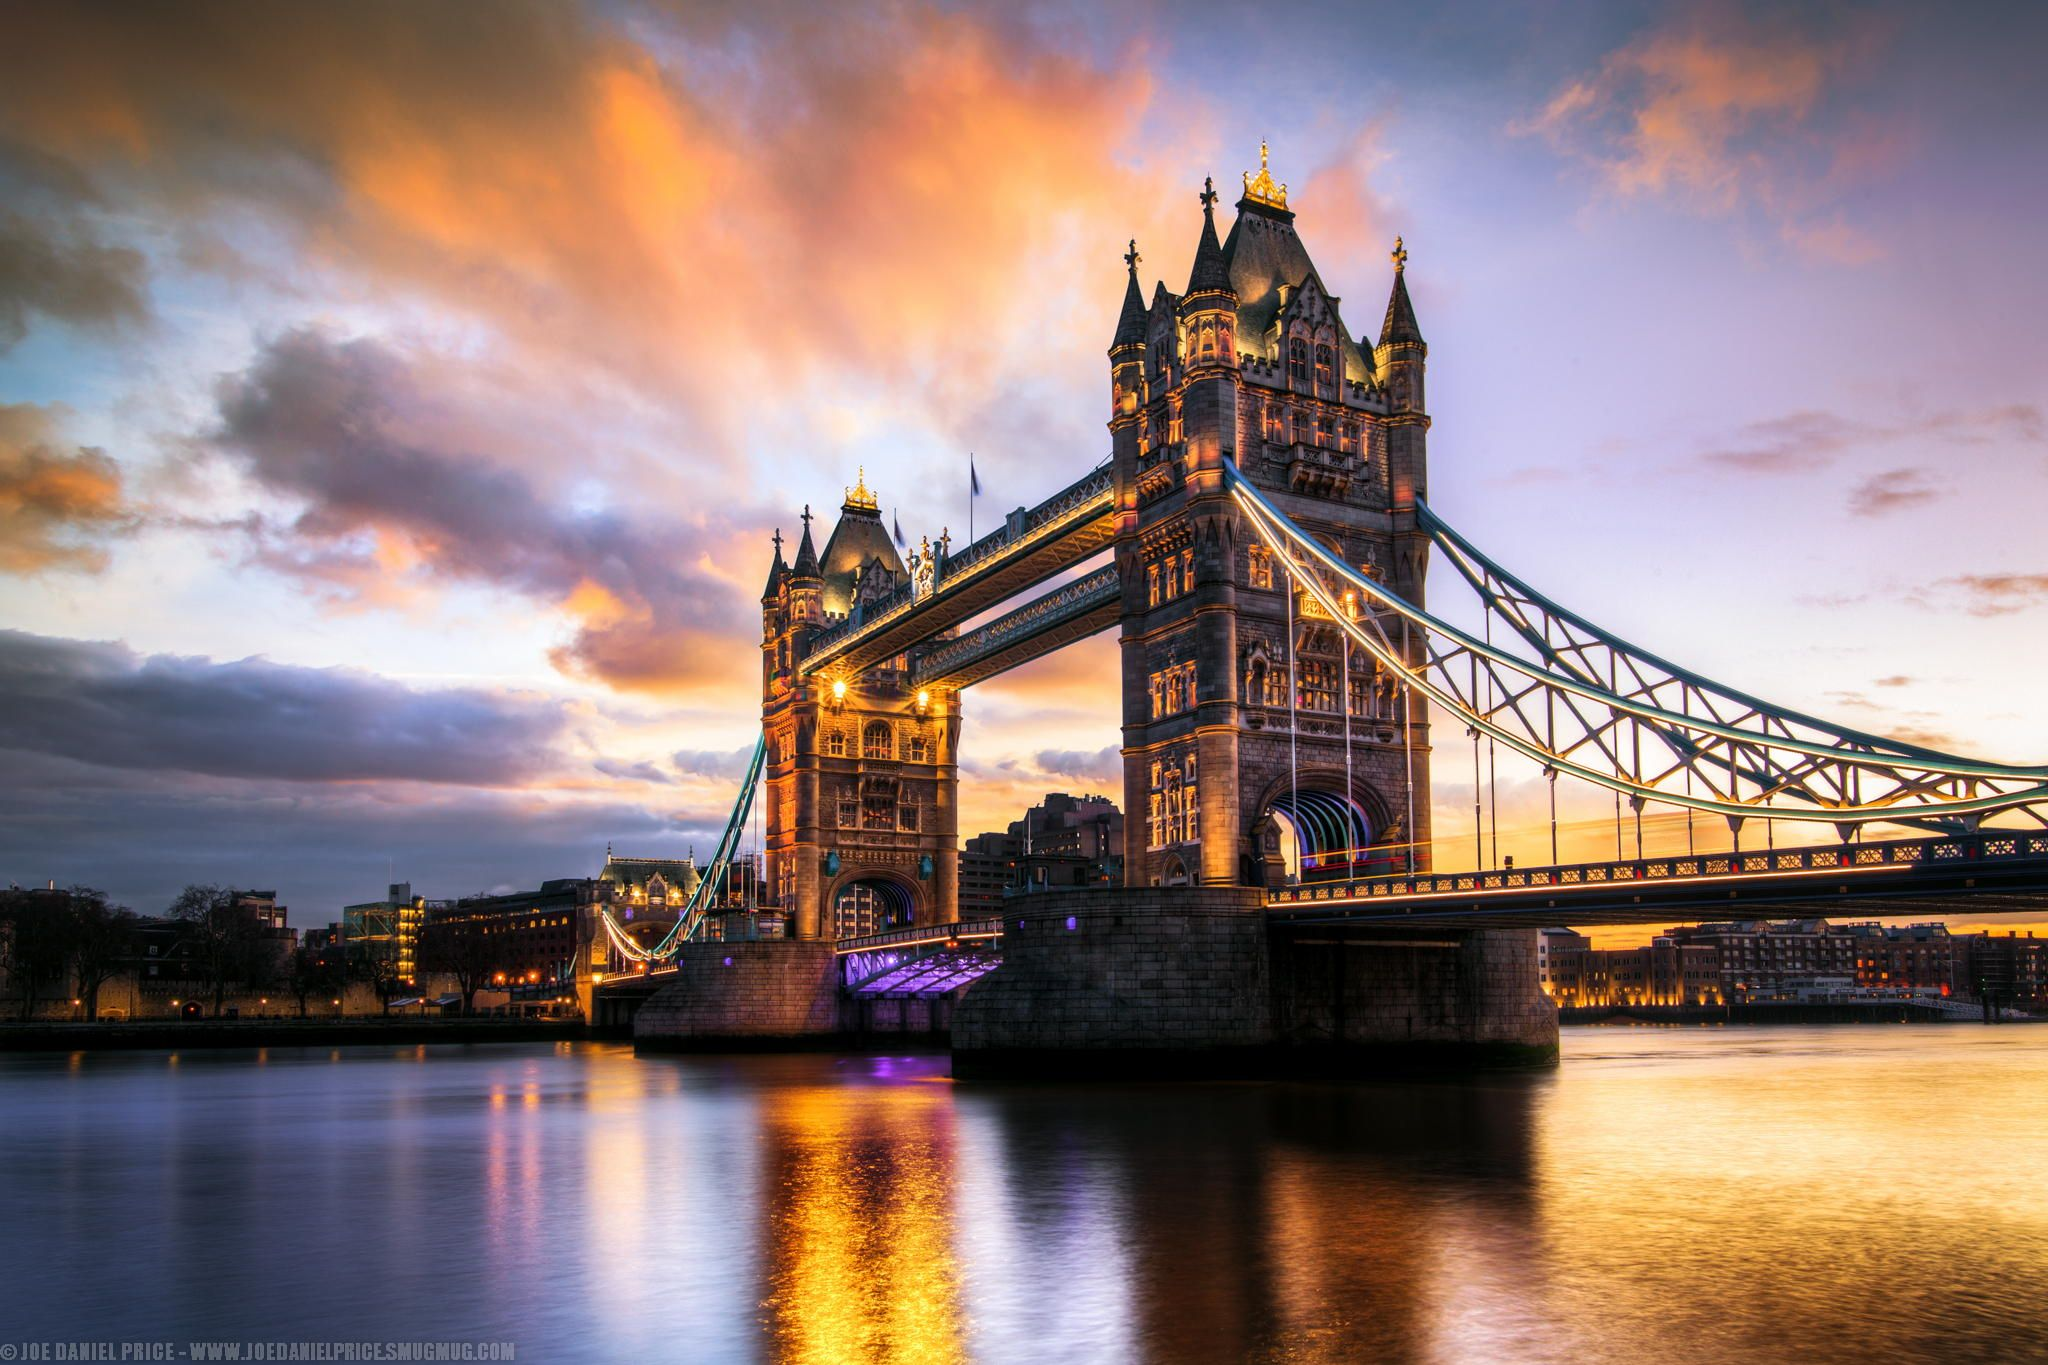 Sunrise at Tower Bridge, London, England by Joe Daniel Price on 500px